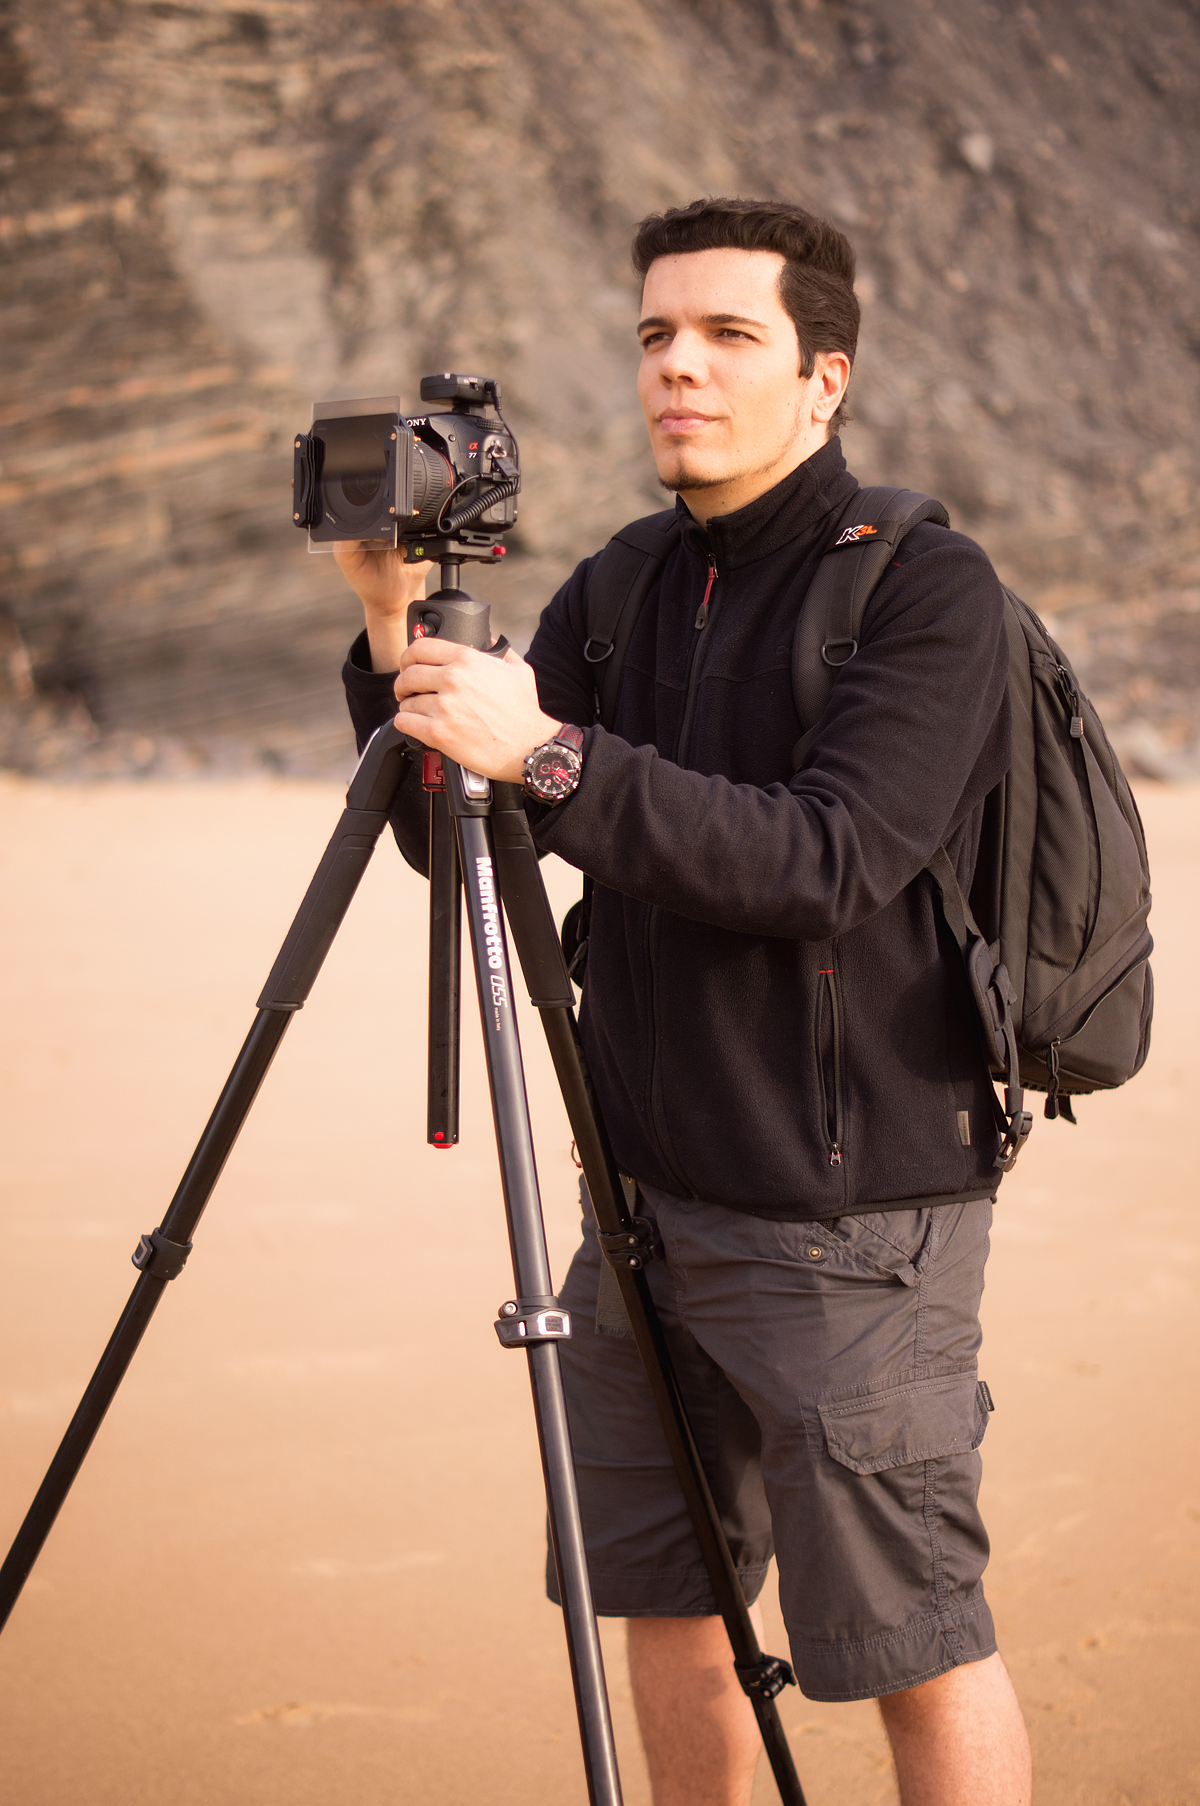 José Ramos shooting with the Manfrotto 055XPRO3 Tripod in Castelejo Beach (Algarve, Portugal)